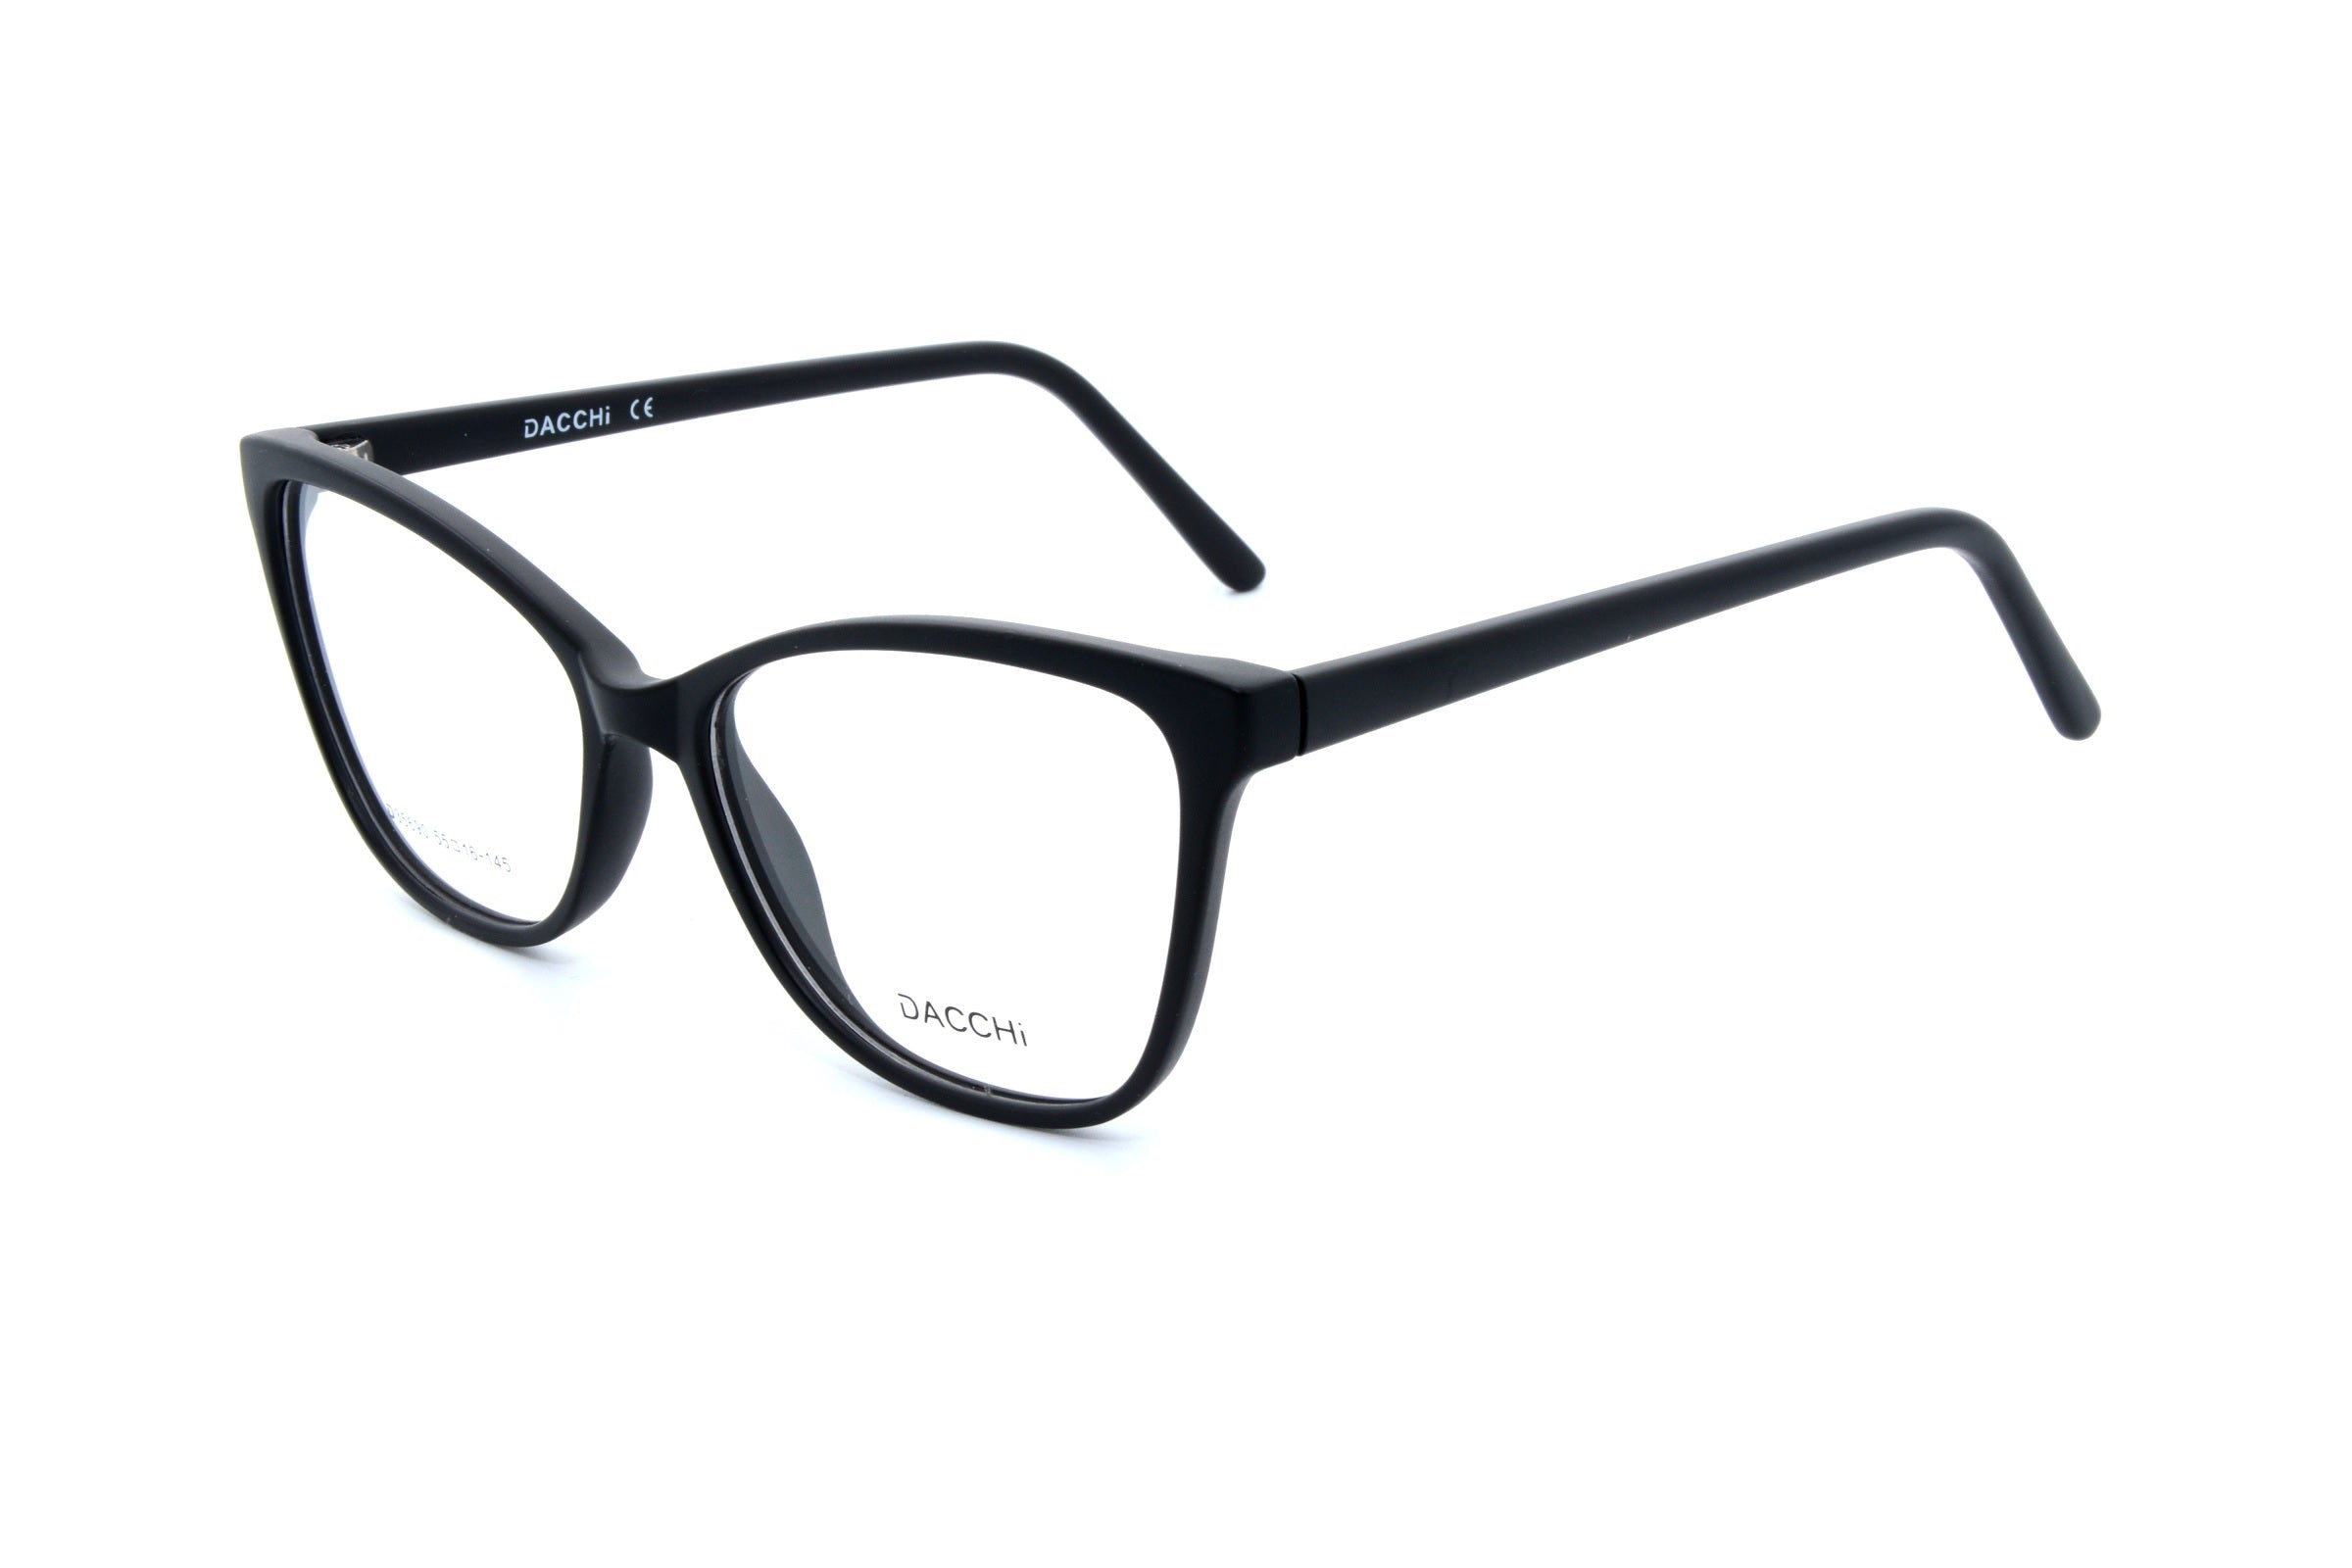 Dacchi eyewear 35690, C4 - Optics Trading